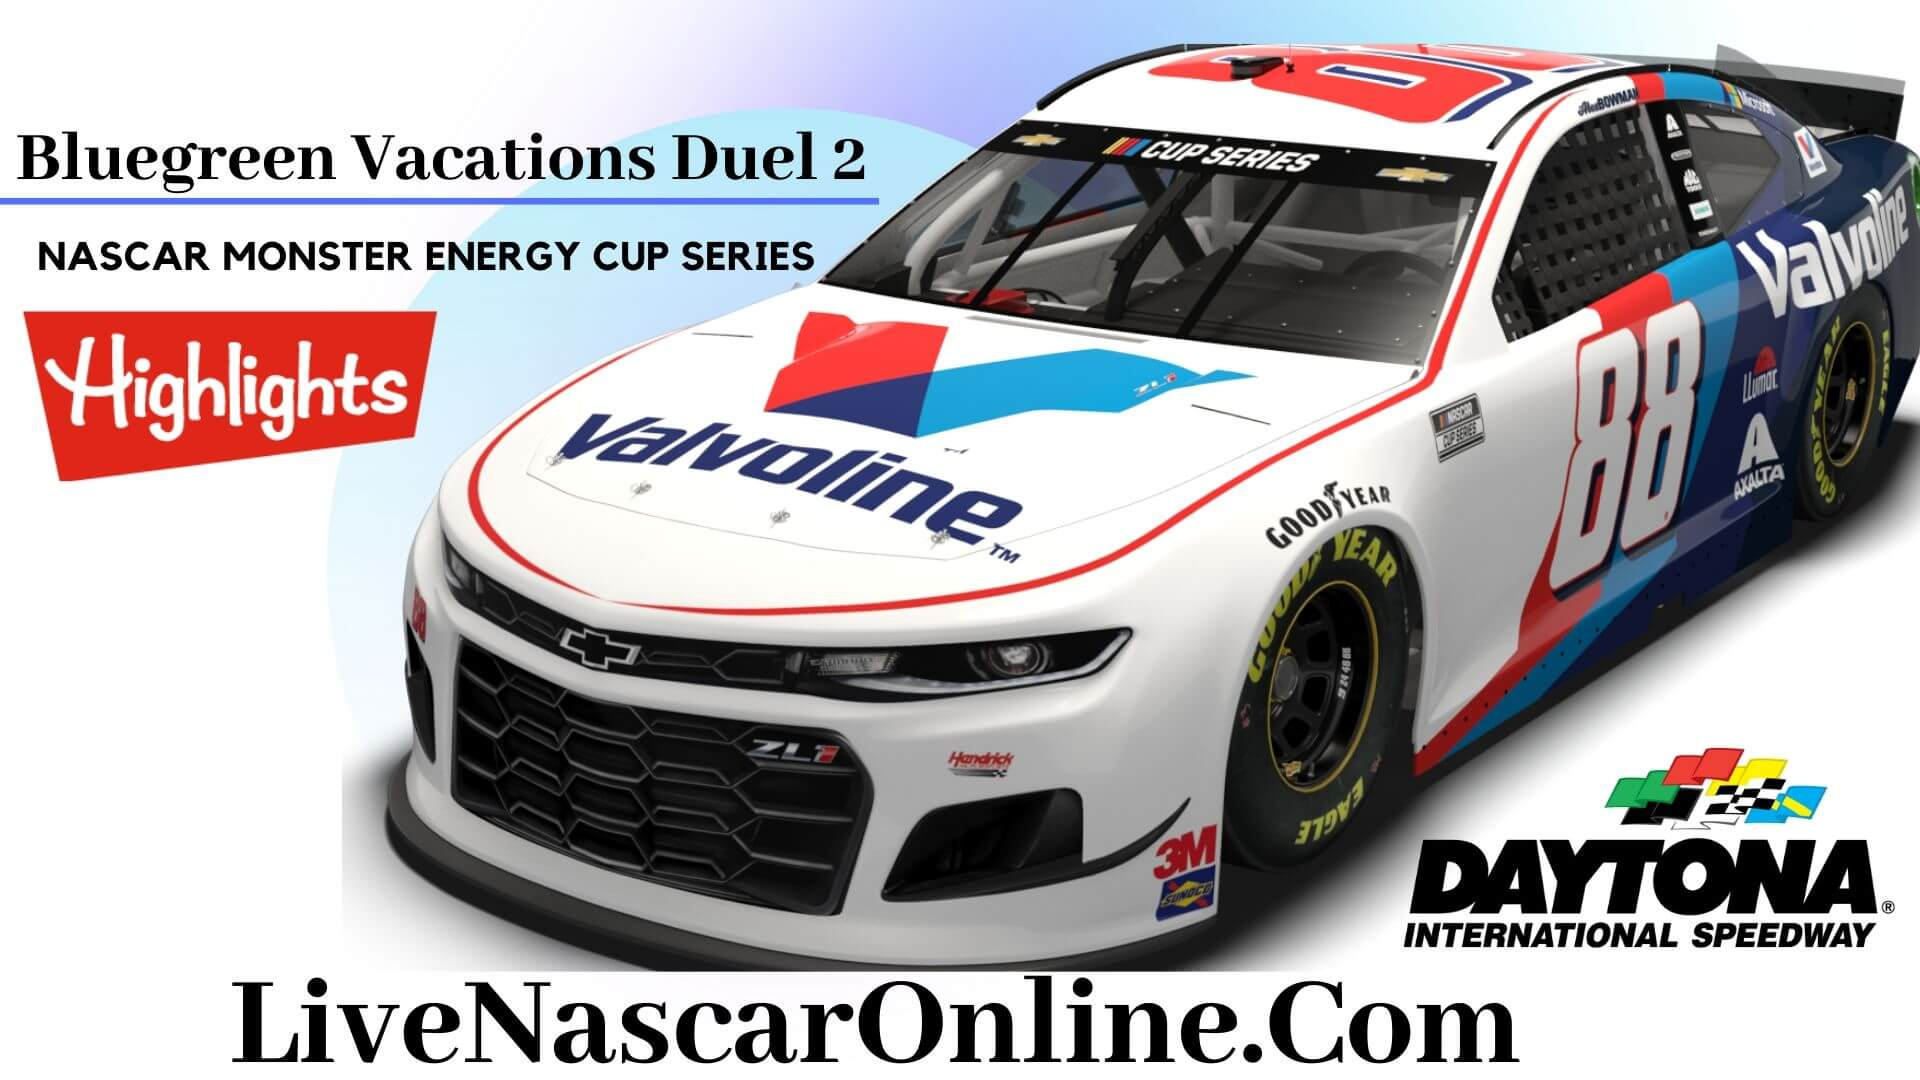 Bluegreen Vacations Duel 2 At Daytona Extended Highlights 2020